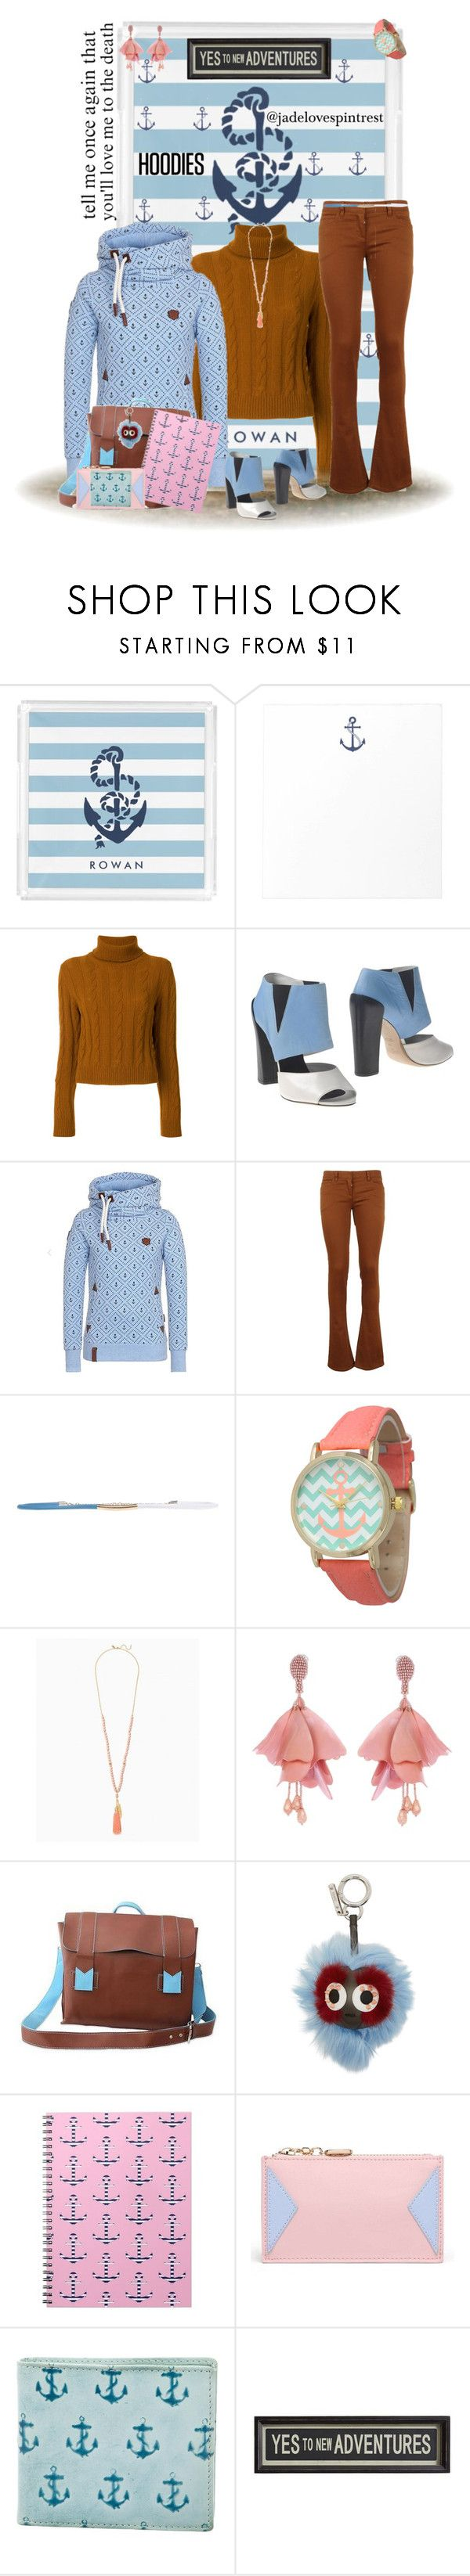 """Stay Anchored"" by jadelovespintrest ❤ liked on Polyvore featuring The Gigi, Stephen, Balmain, Space Style Concept, Geneva, Oscar de la Renta, NOVICA, Fendi, Jack Spade and Pottery Barn"